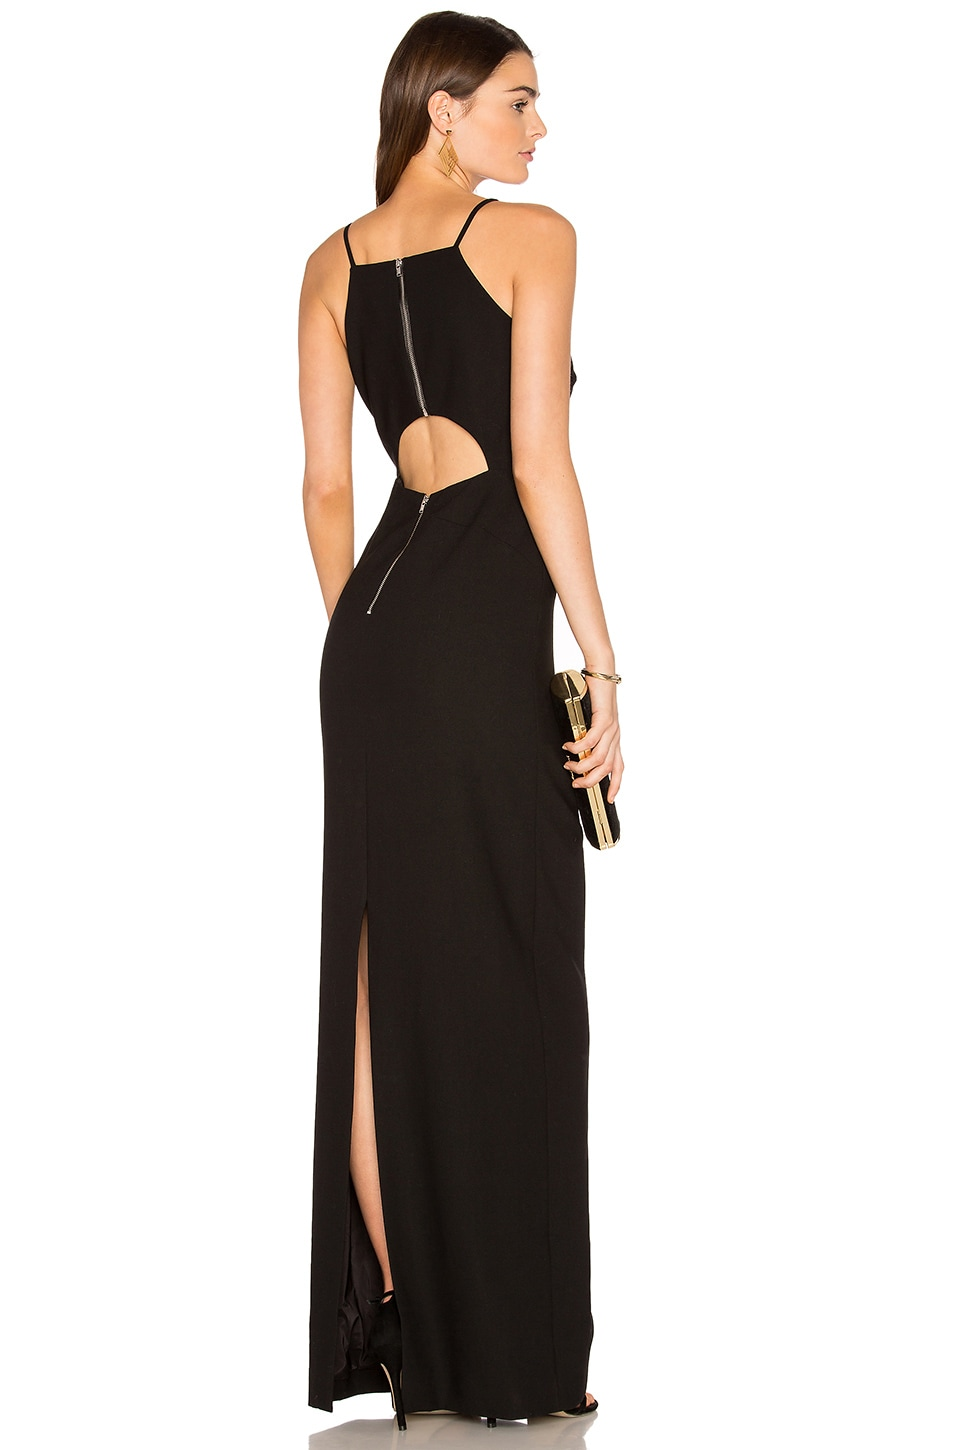 Elizabeth and James Elana Gown in Black